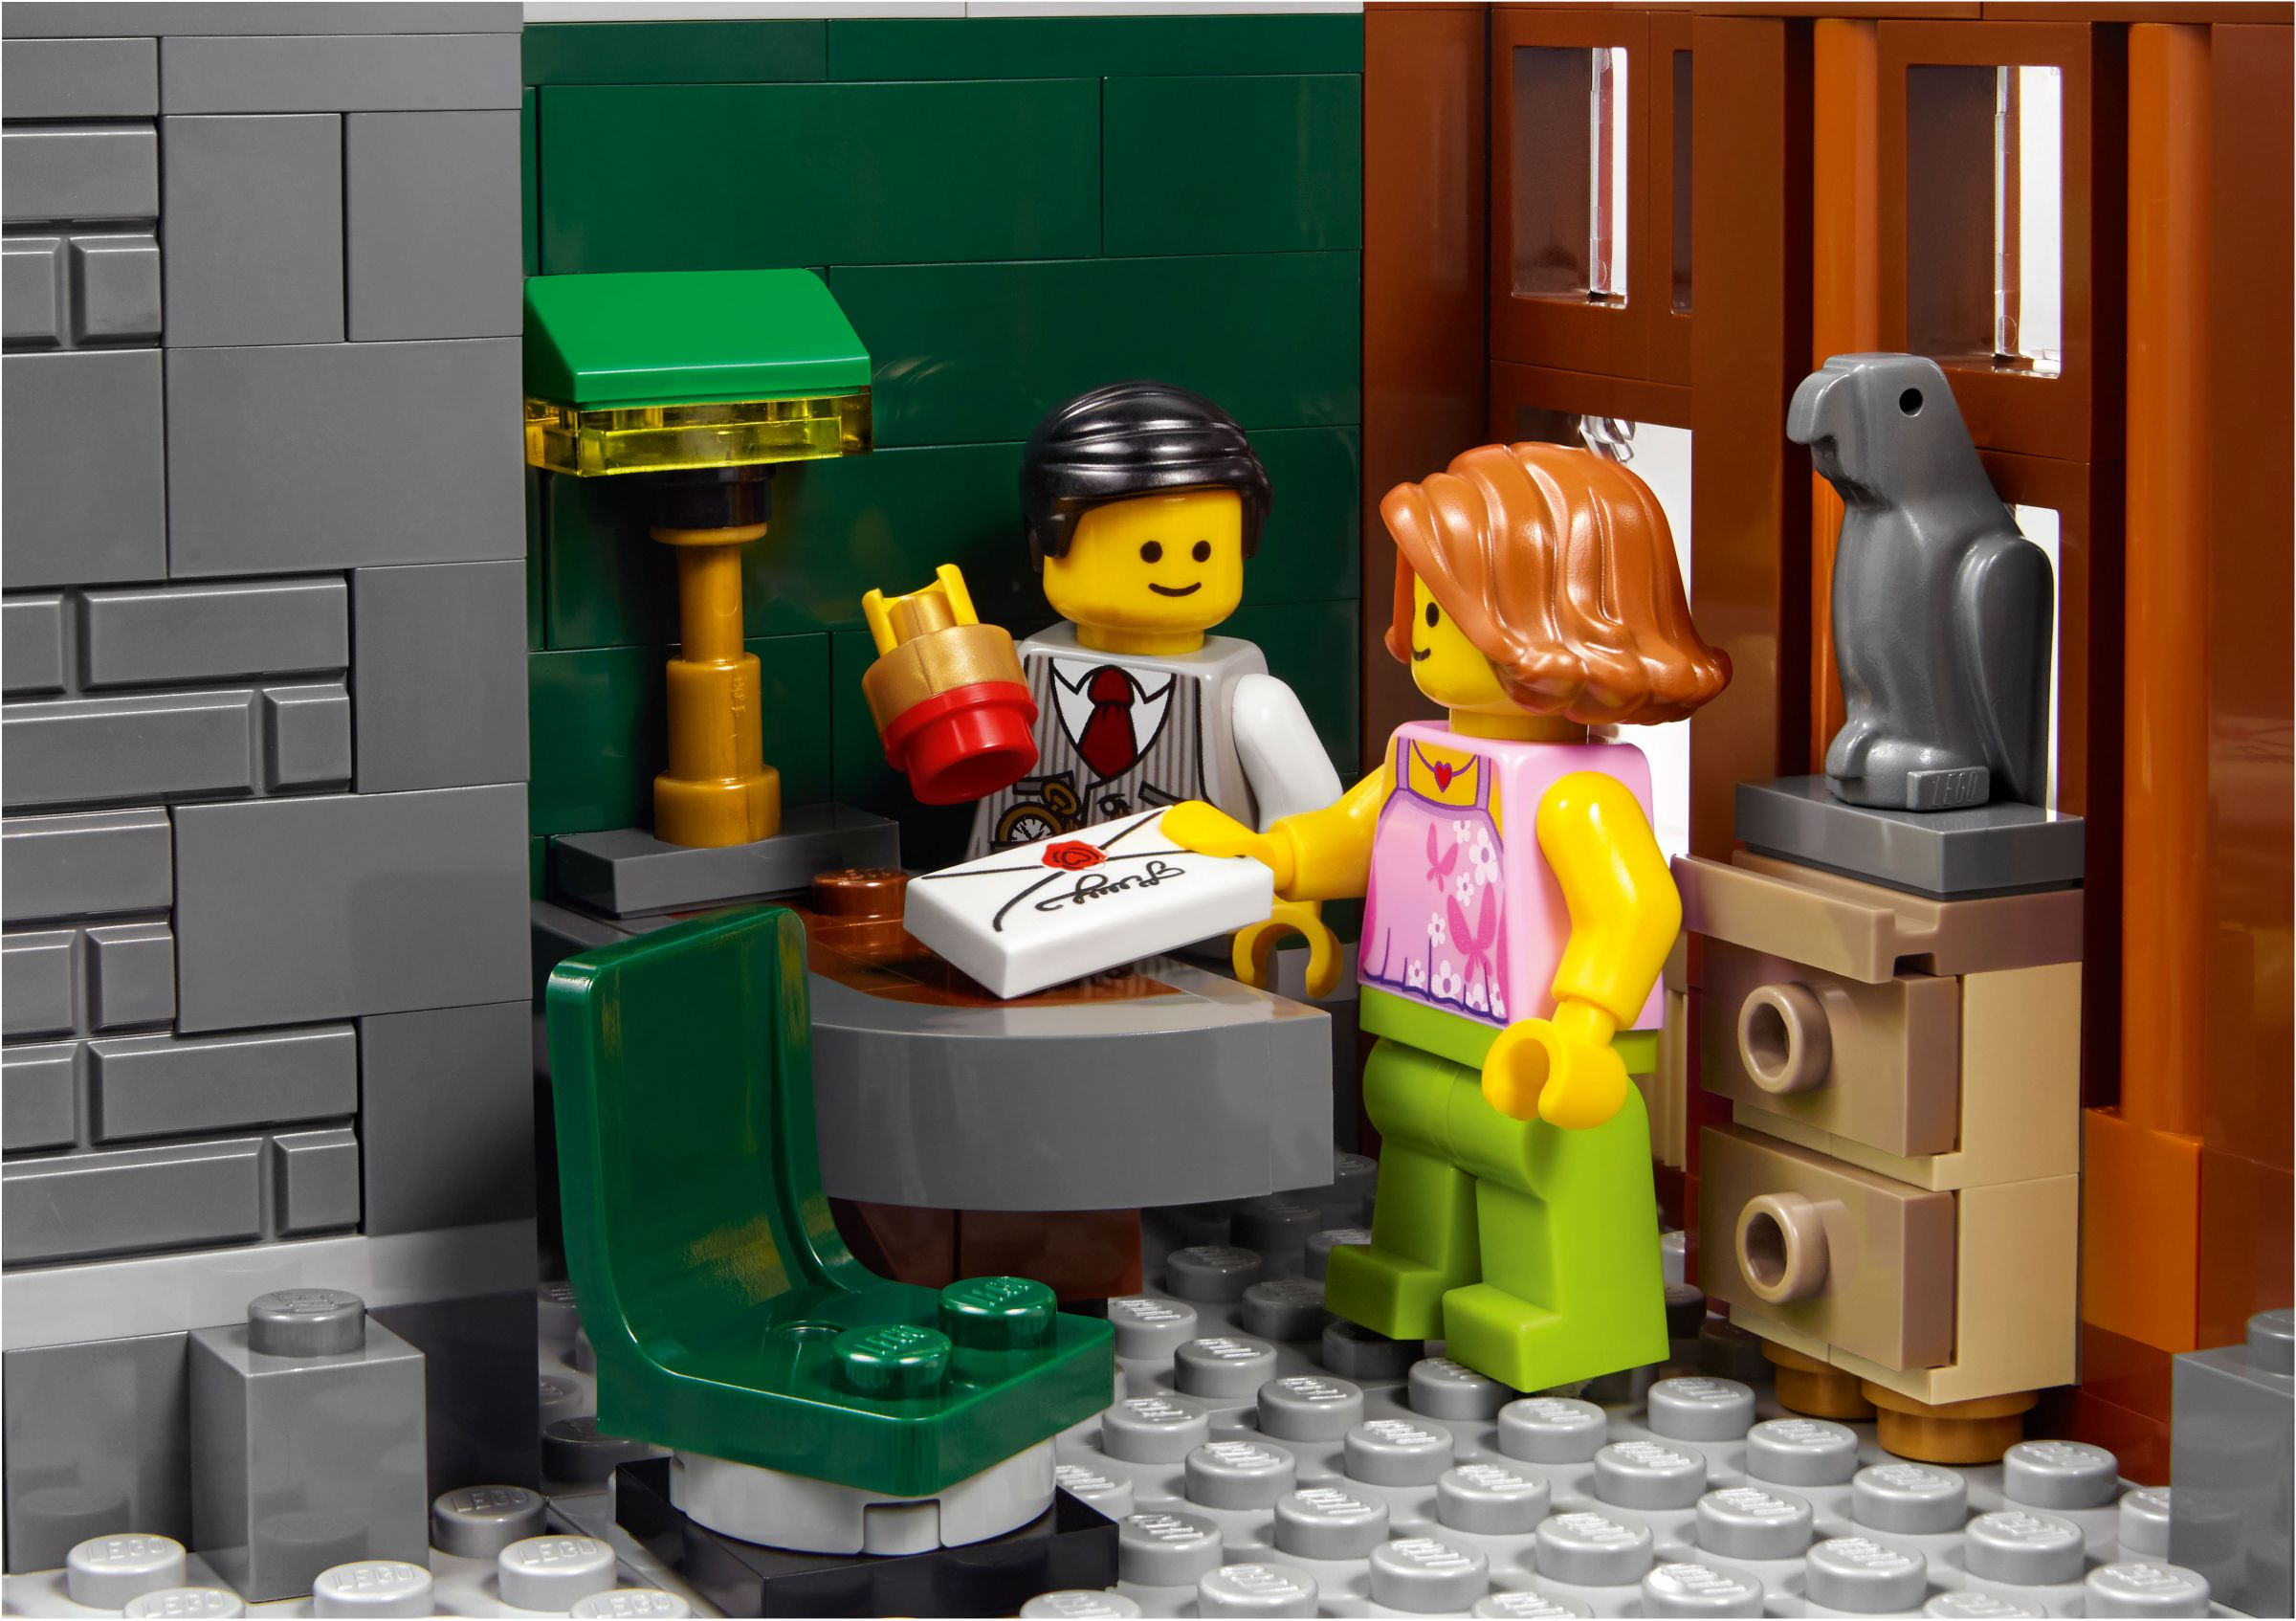 LEGO Advanced Models 10251 Steine-Bank 10251_Brick_Bank_14.jpg